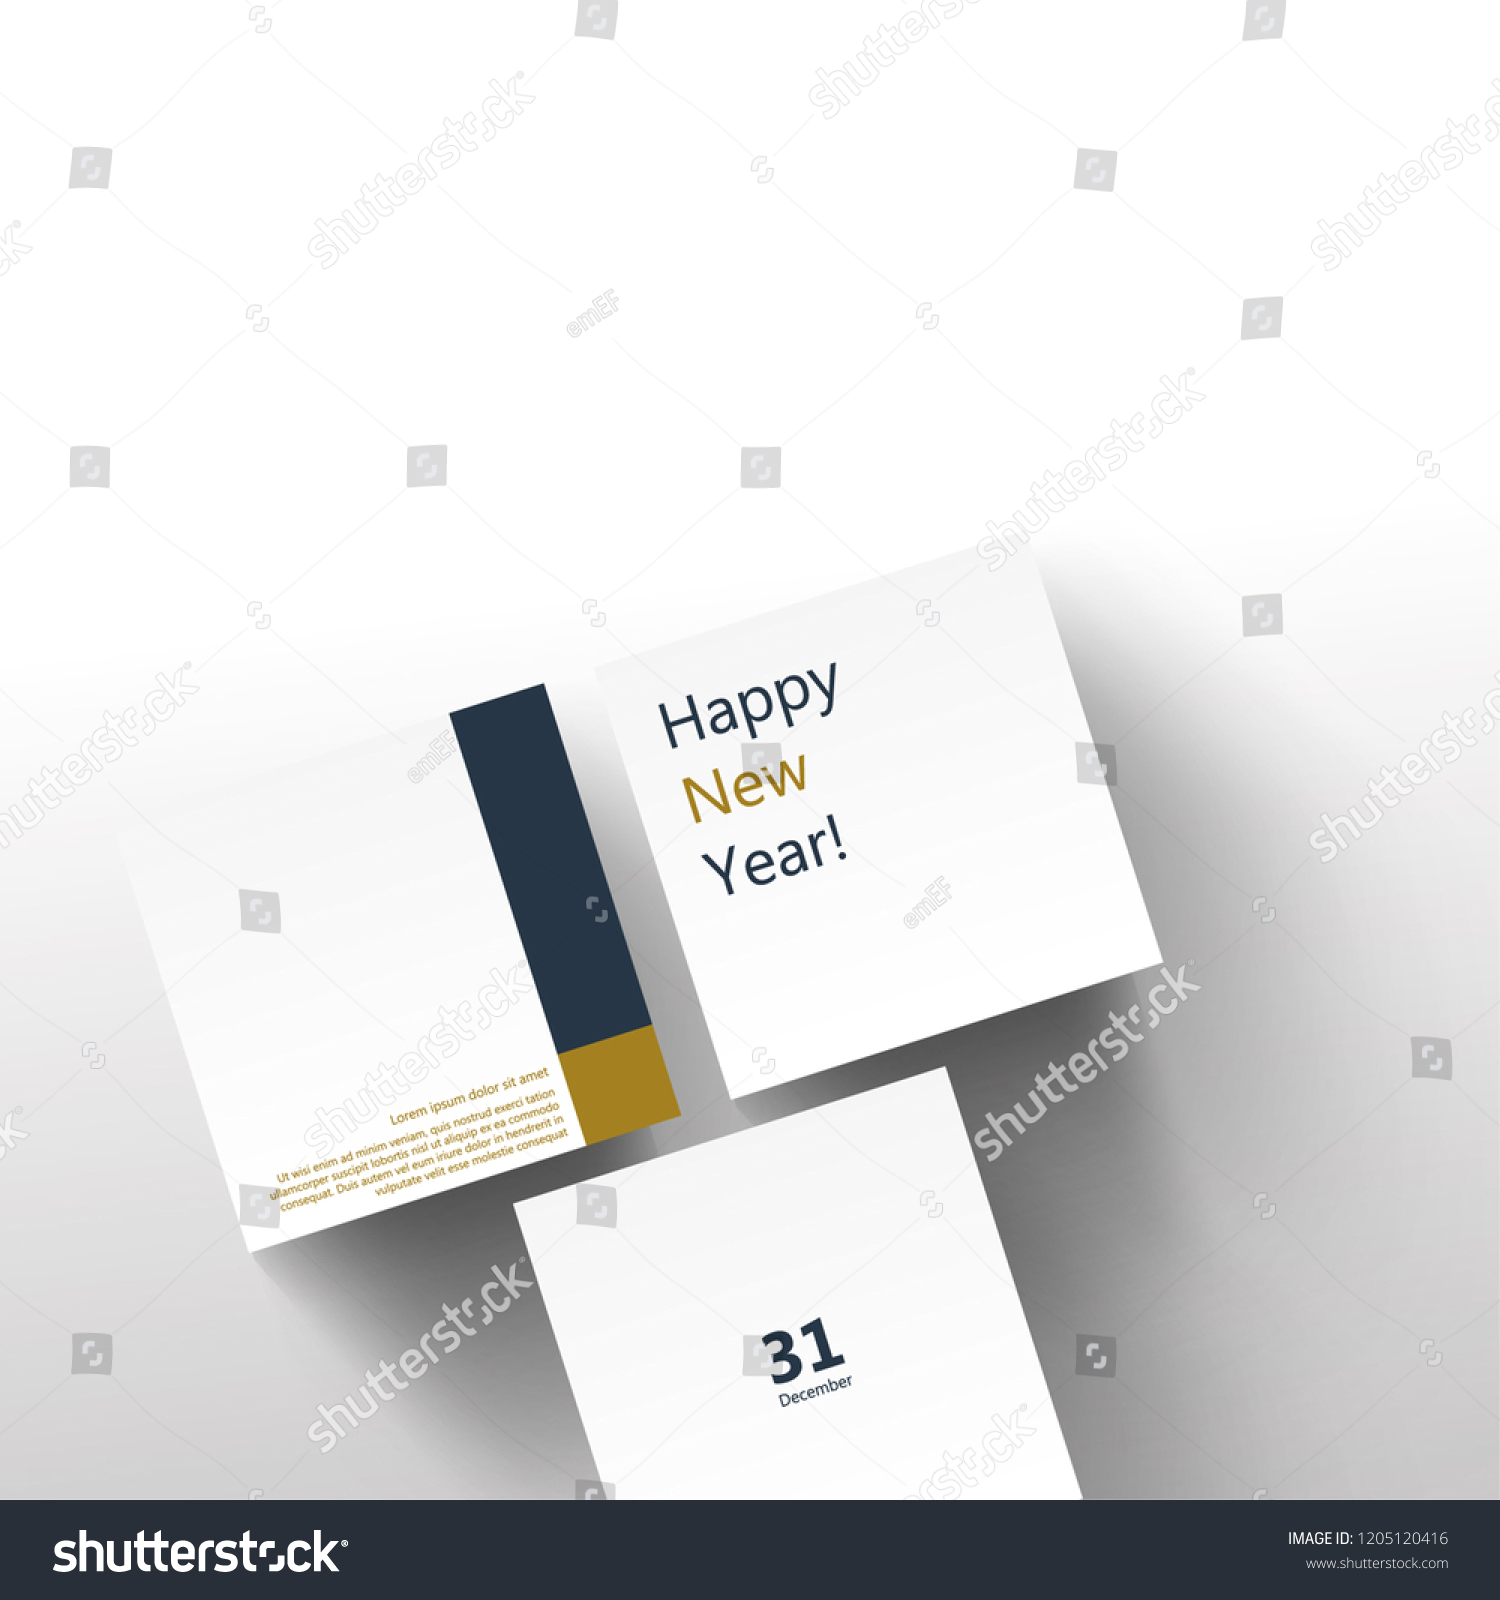 simple business new year greetings layoutdesign cover modern and abstract background stock